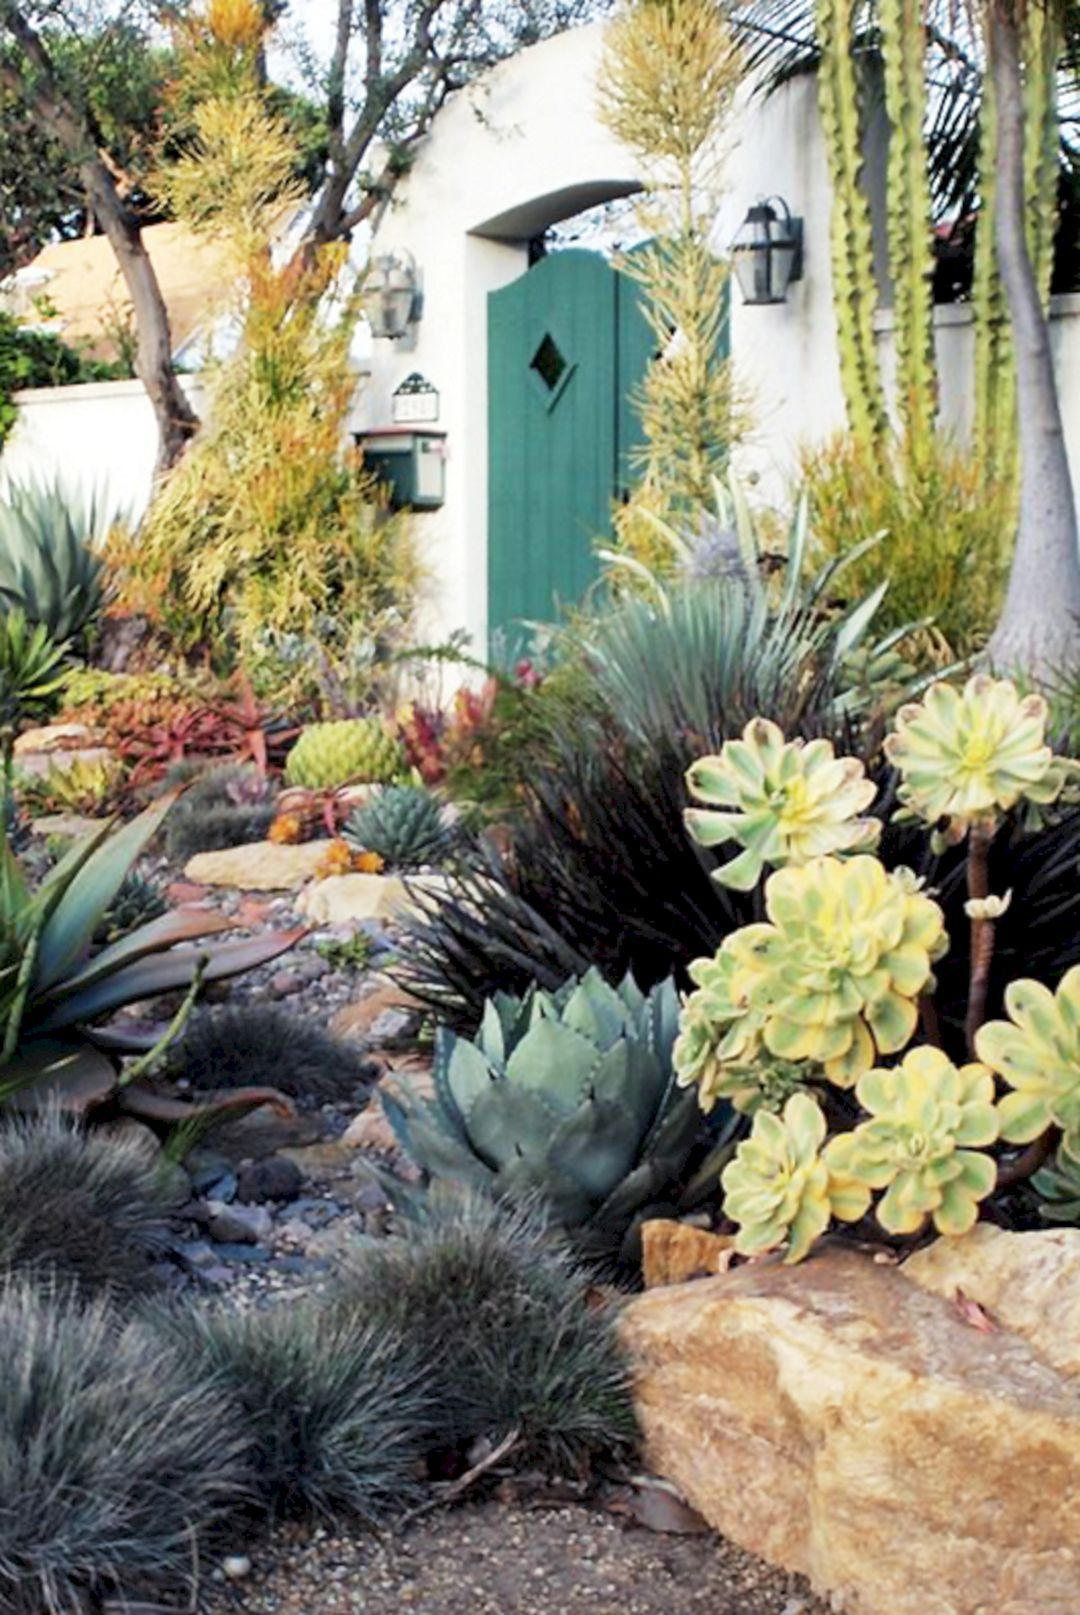 Sublime 30 Beautiful Desert Garden Design Ideas For Your Backyard  Https://freshouz.com/30 Beautiful Desert Garden Design Ideas Backyard/  #home #decor ...